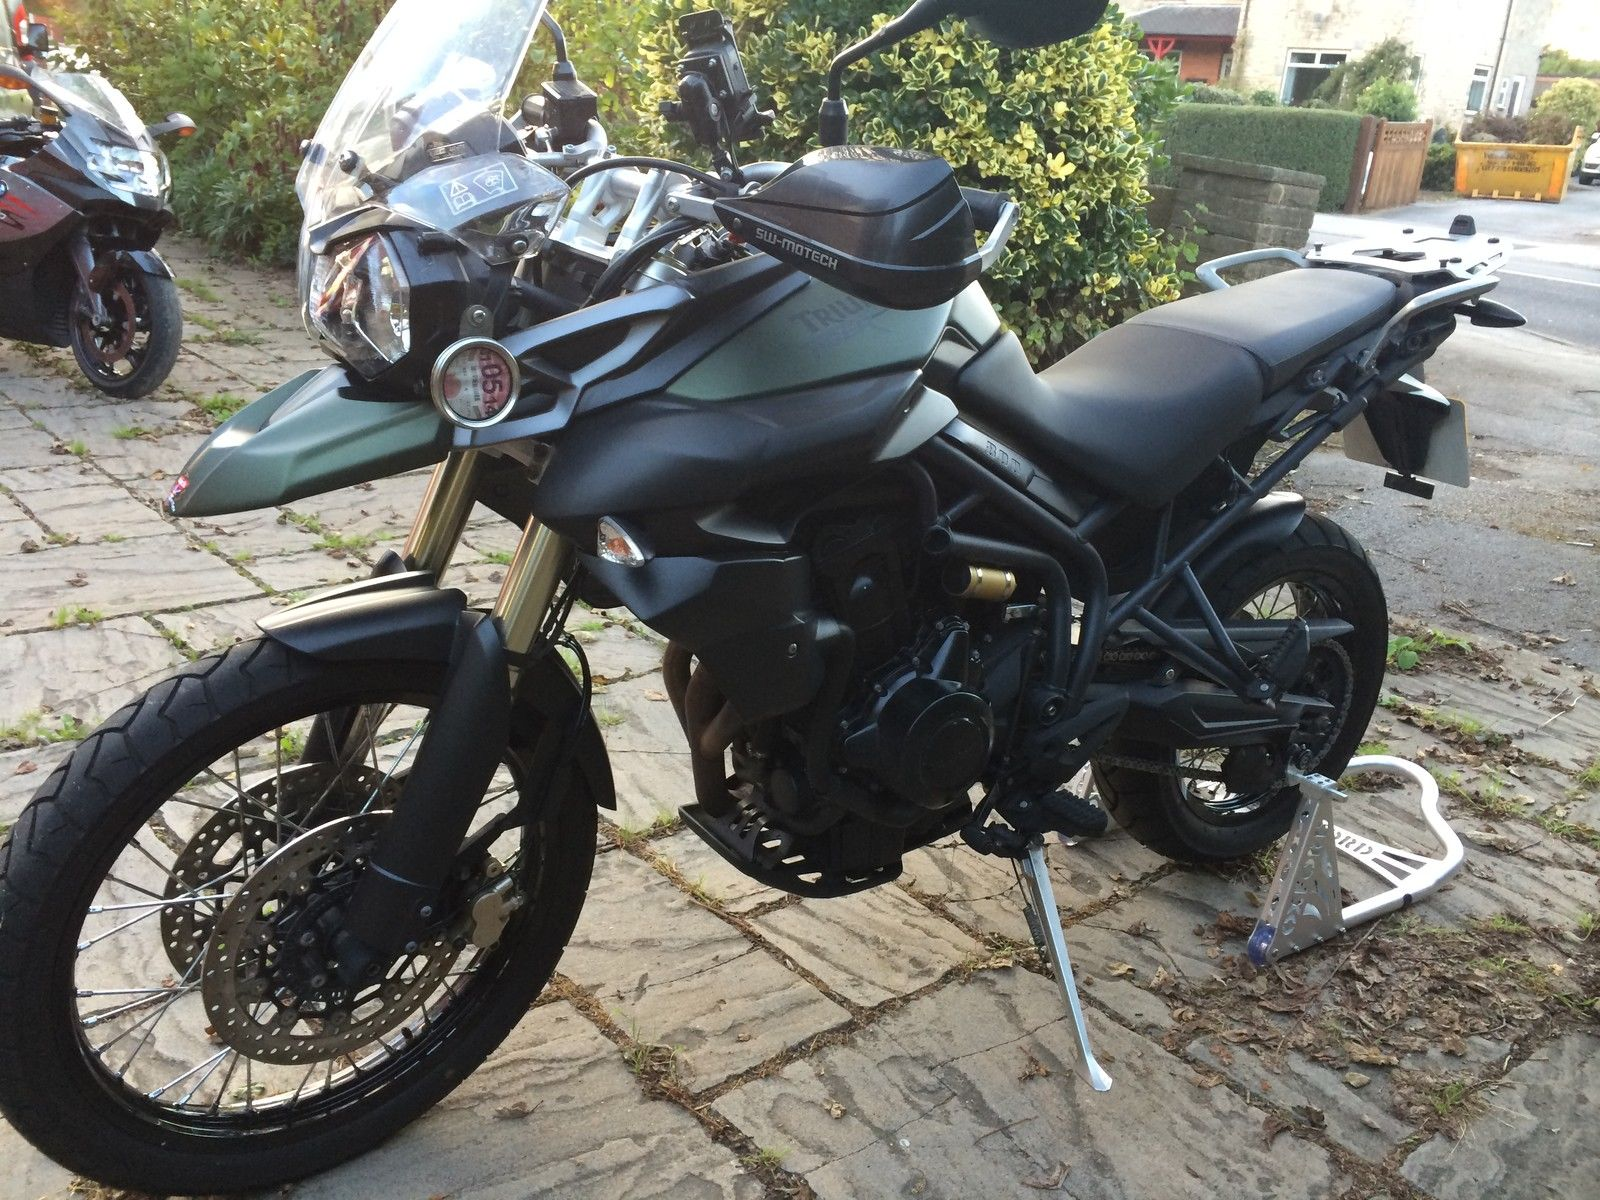 Used 2012 Triumph Tiger 800 XC ABS Motorcycles in San Jose